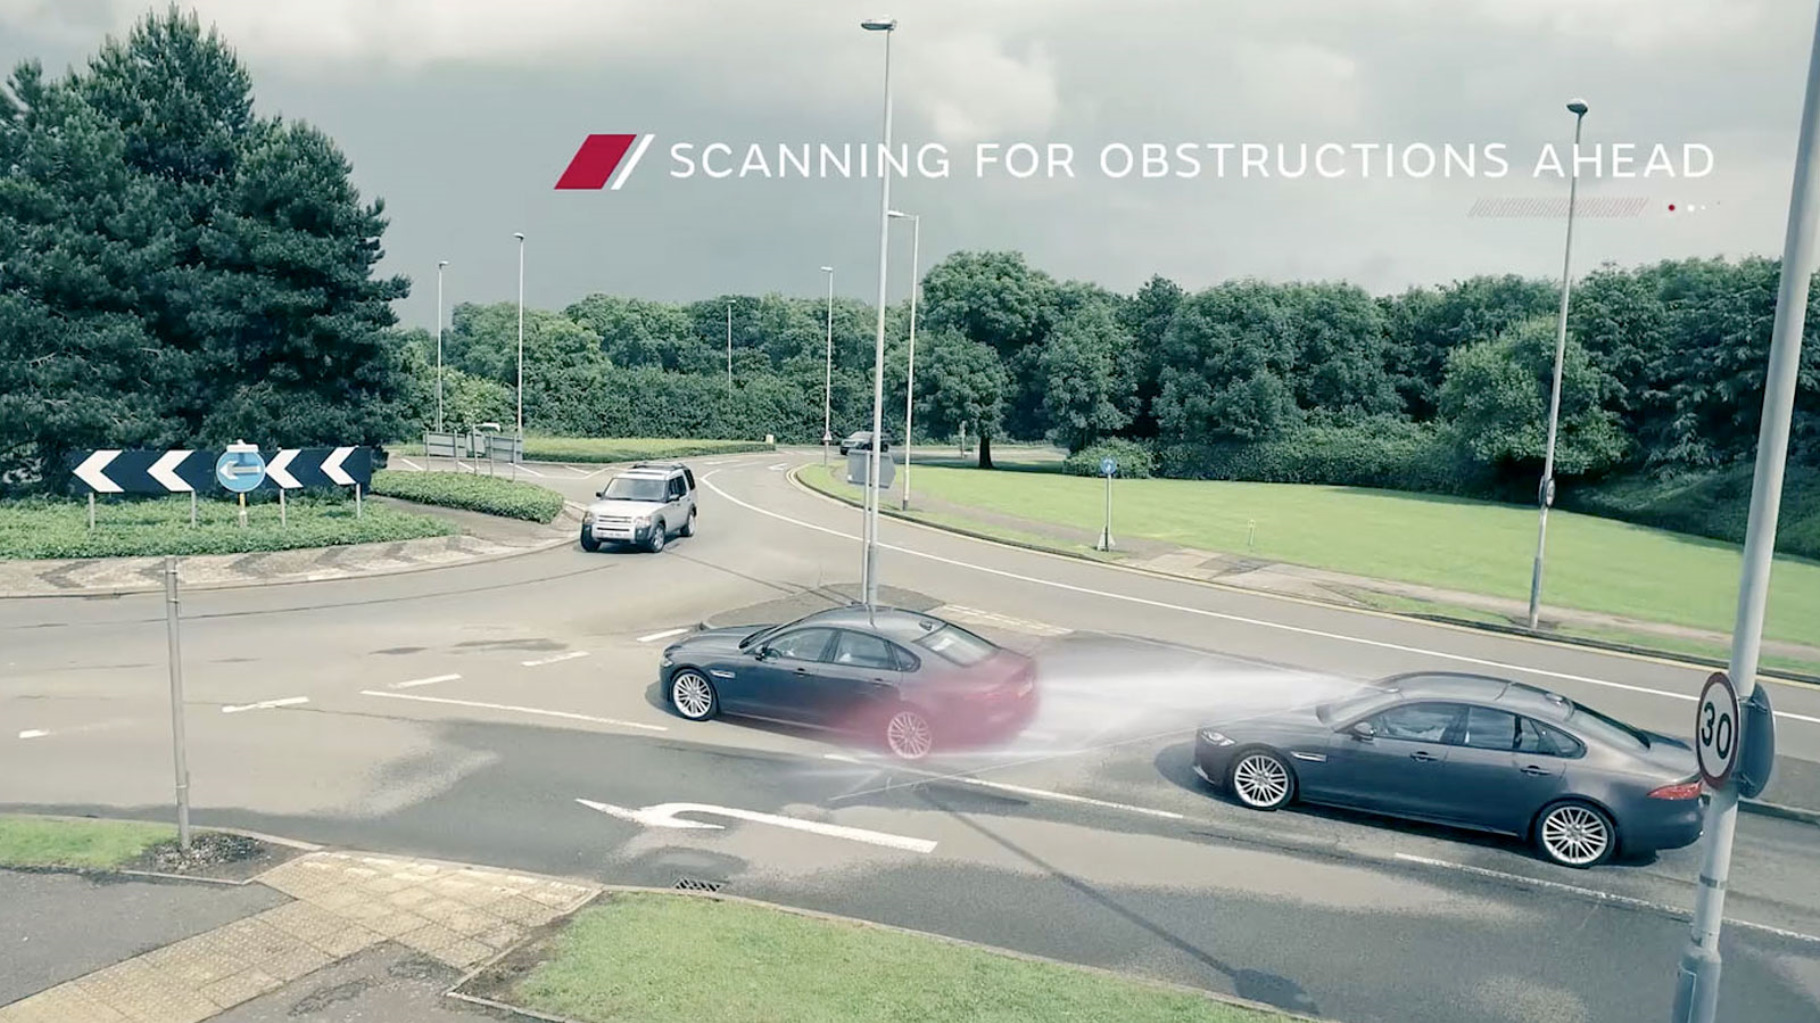 Jaguar Autonomous Vehicle On A Road Scanning For Obstacles